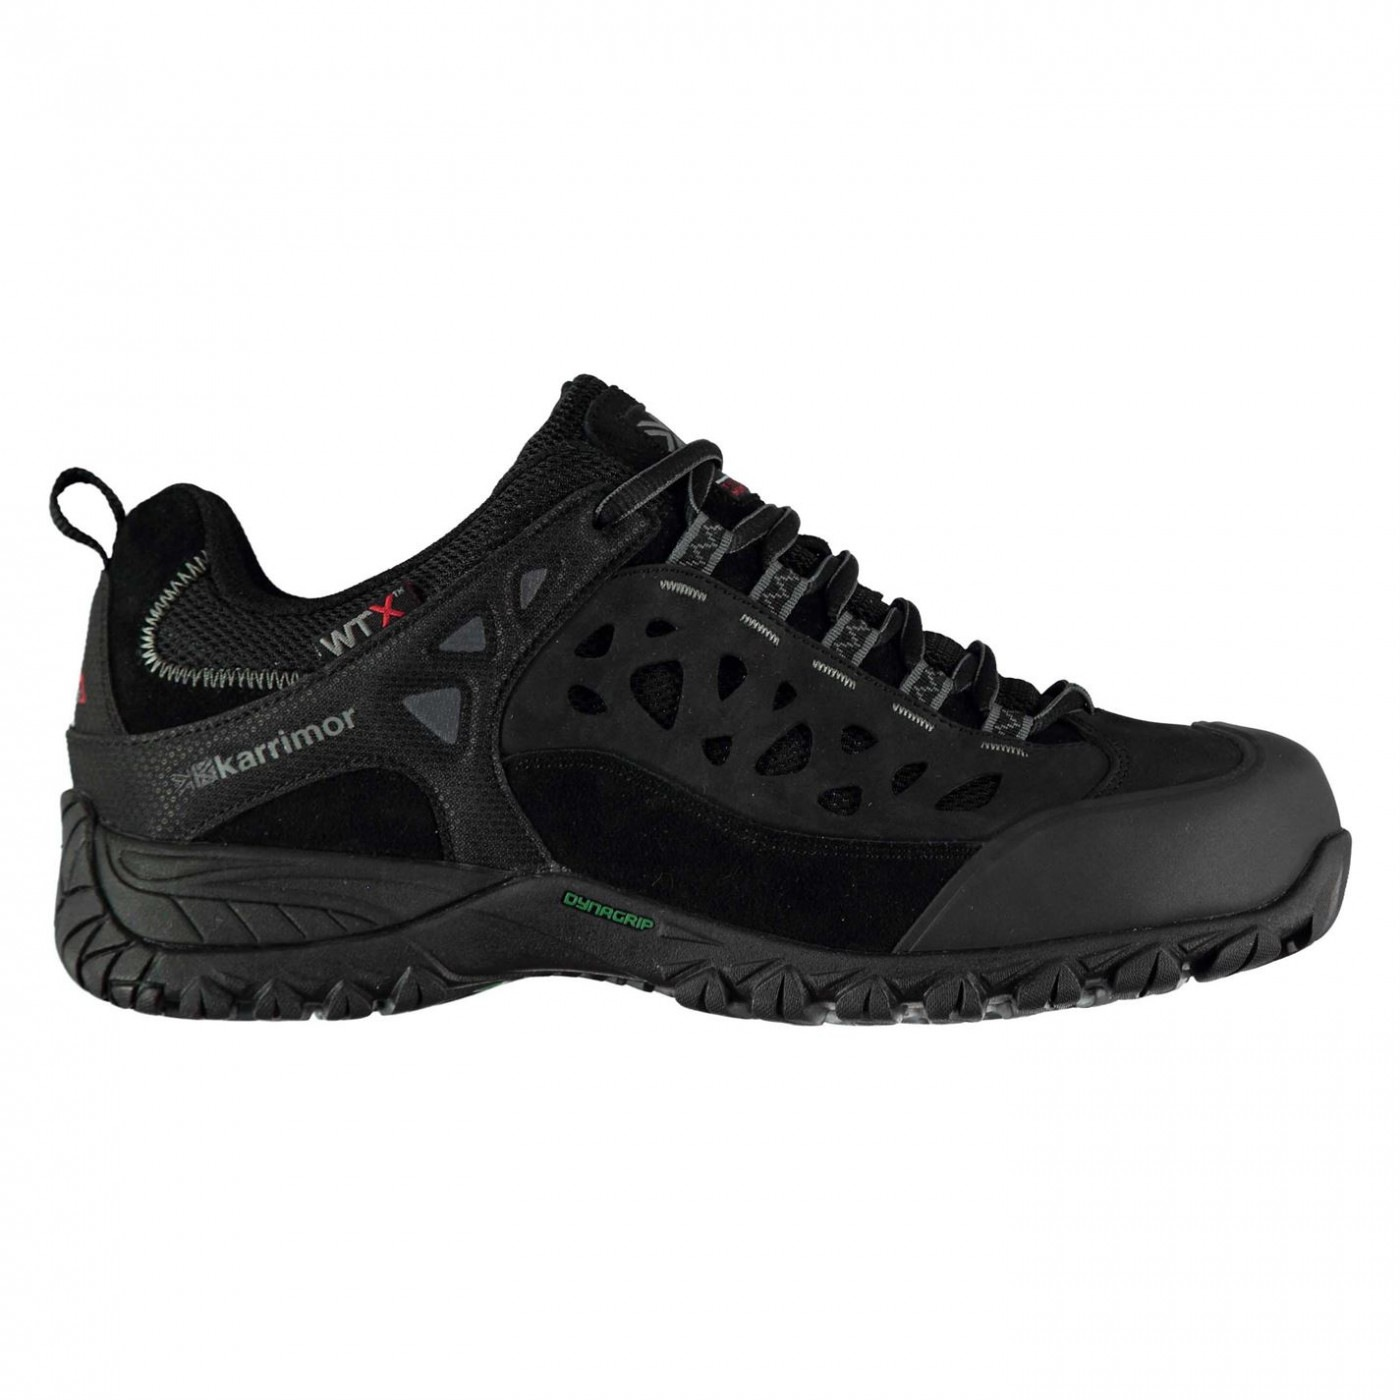 Men's walking shoes Karrimor Corrie WT